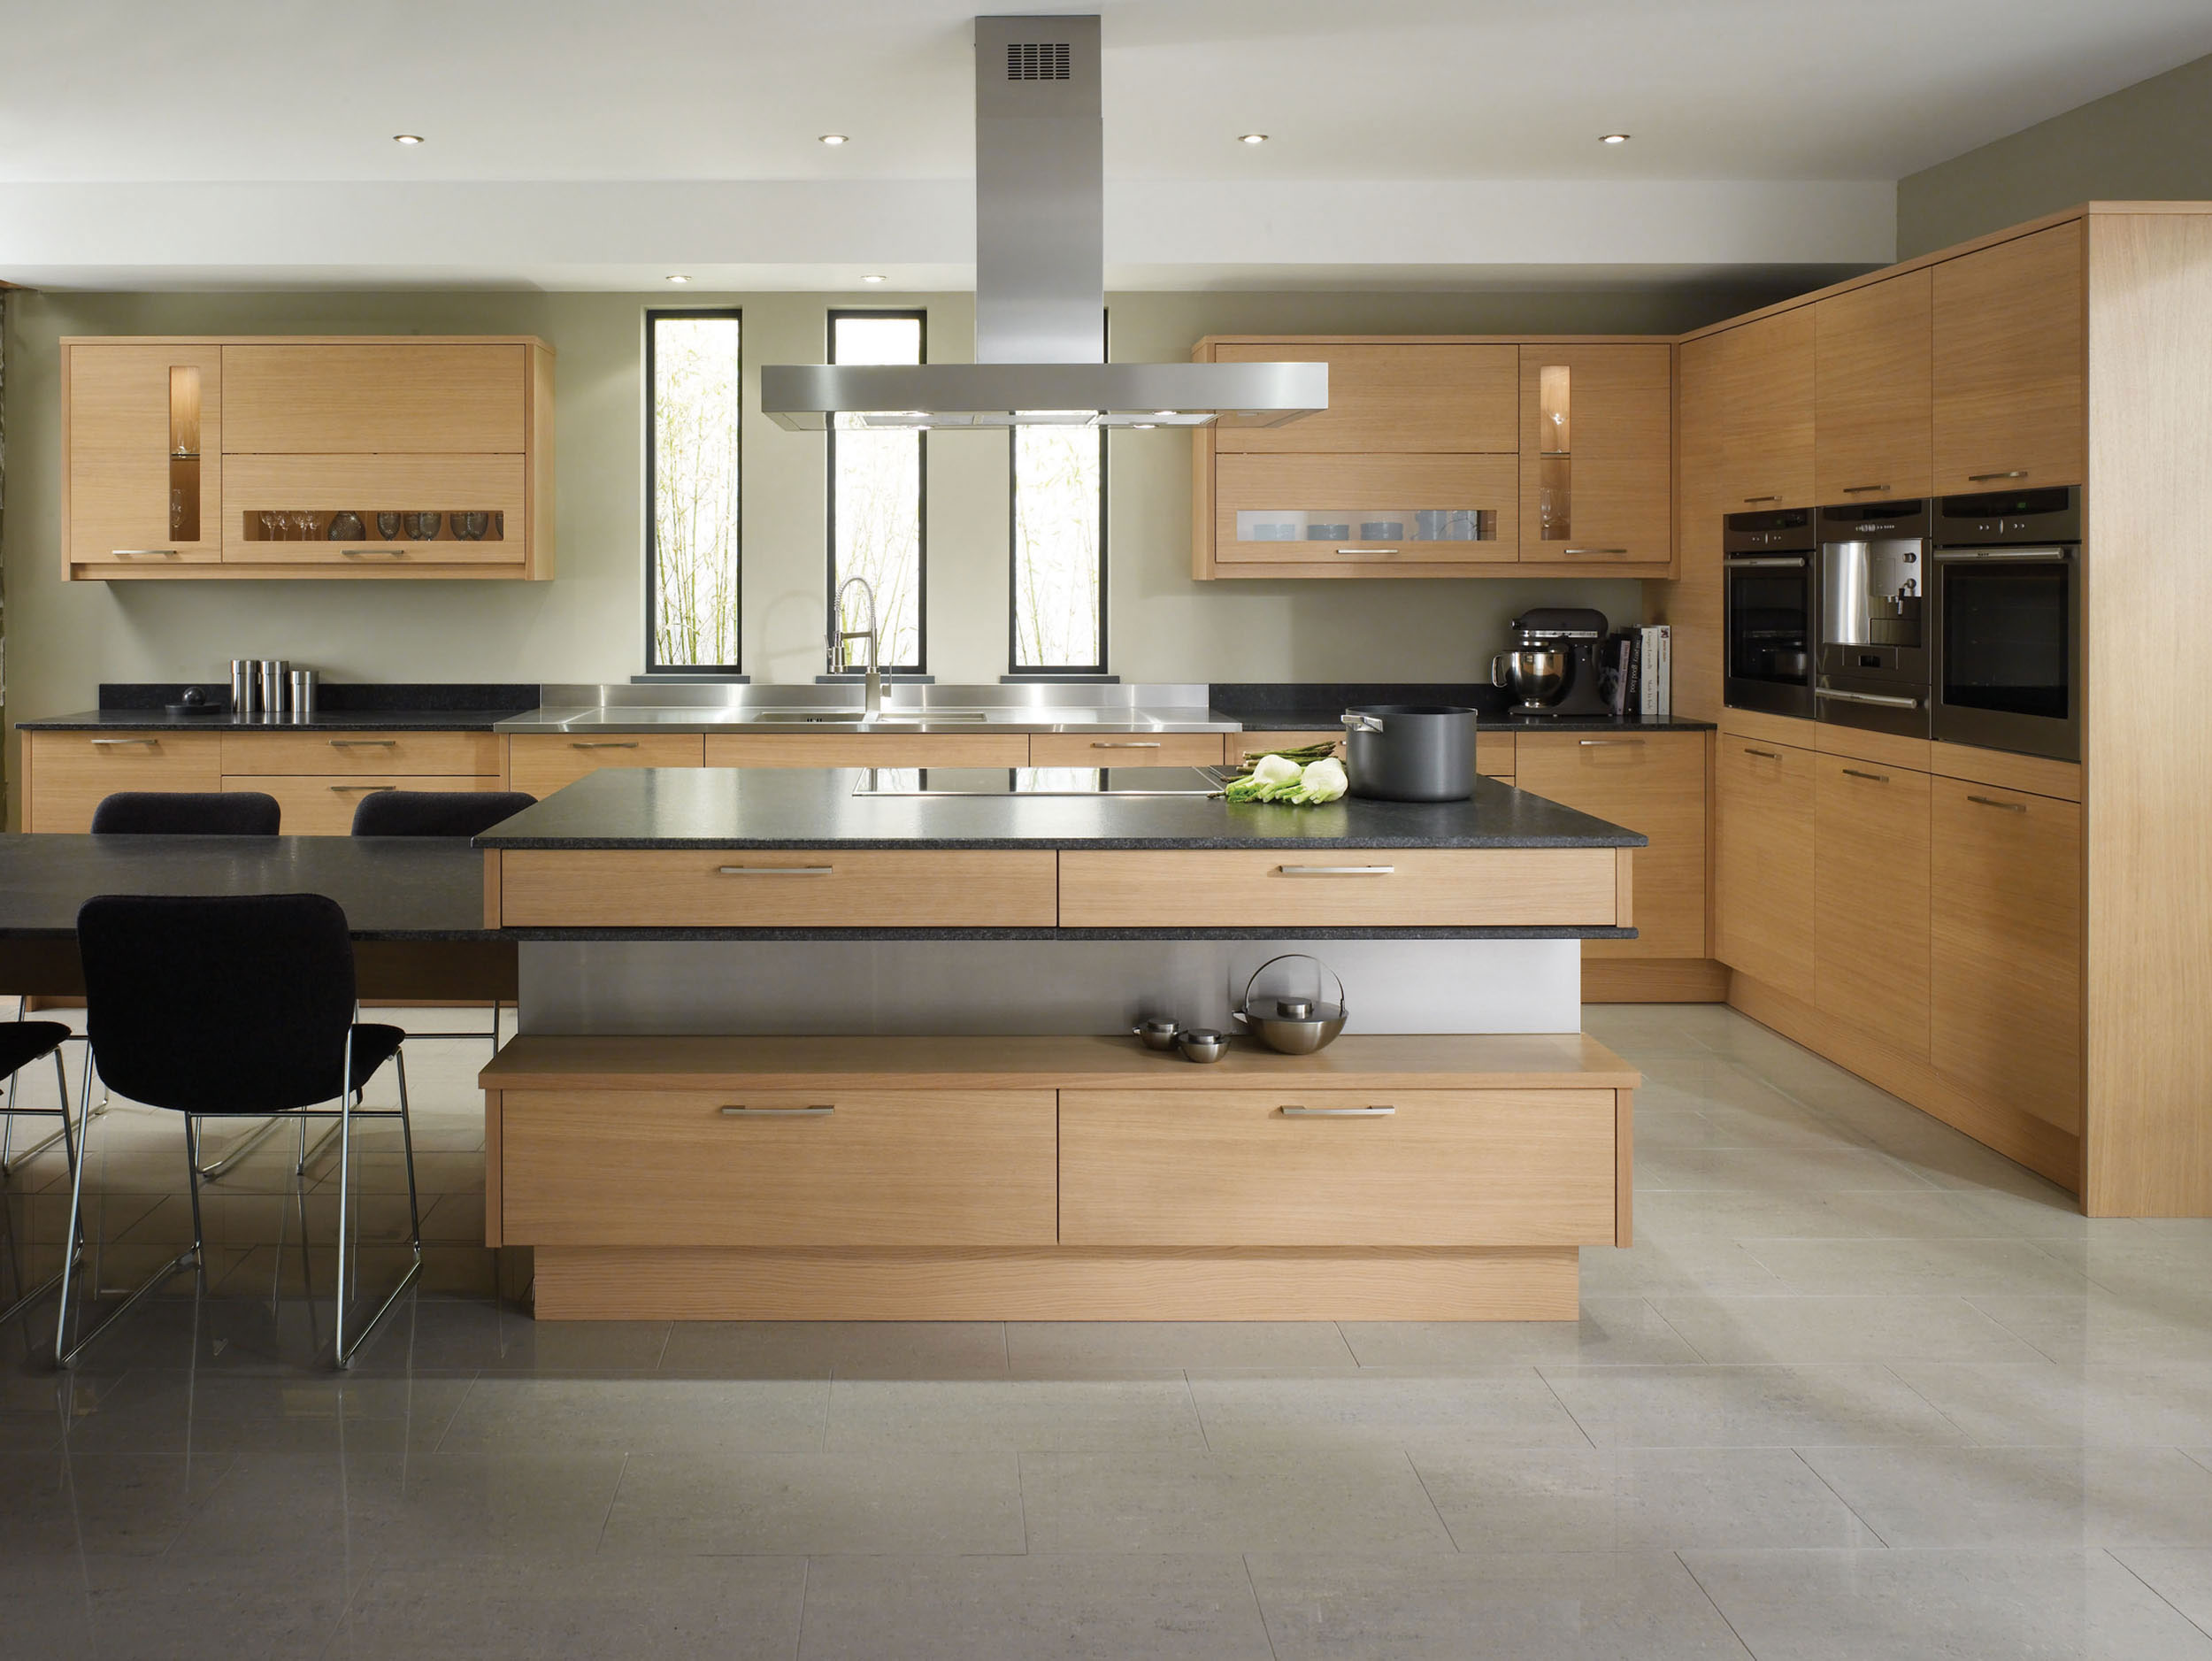 customkitchencabinetry contemporary kitchen cabinets Modern Kitchen Cabinet Design NYC